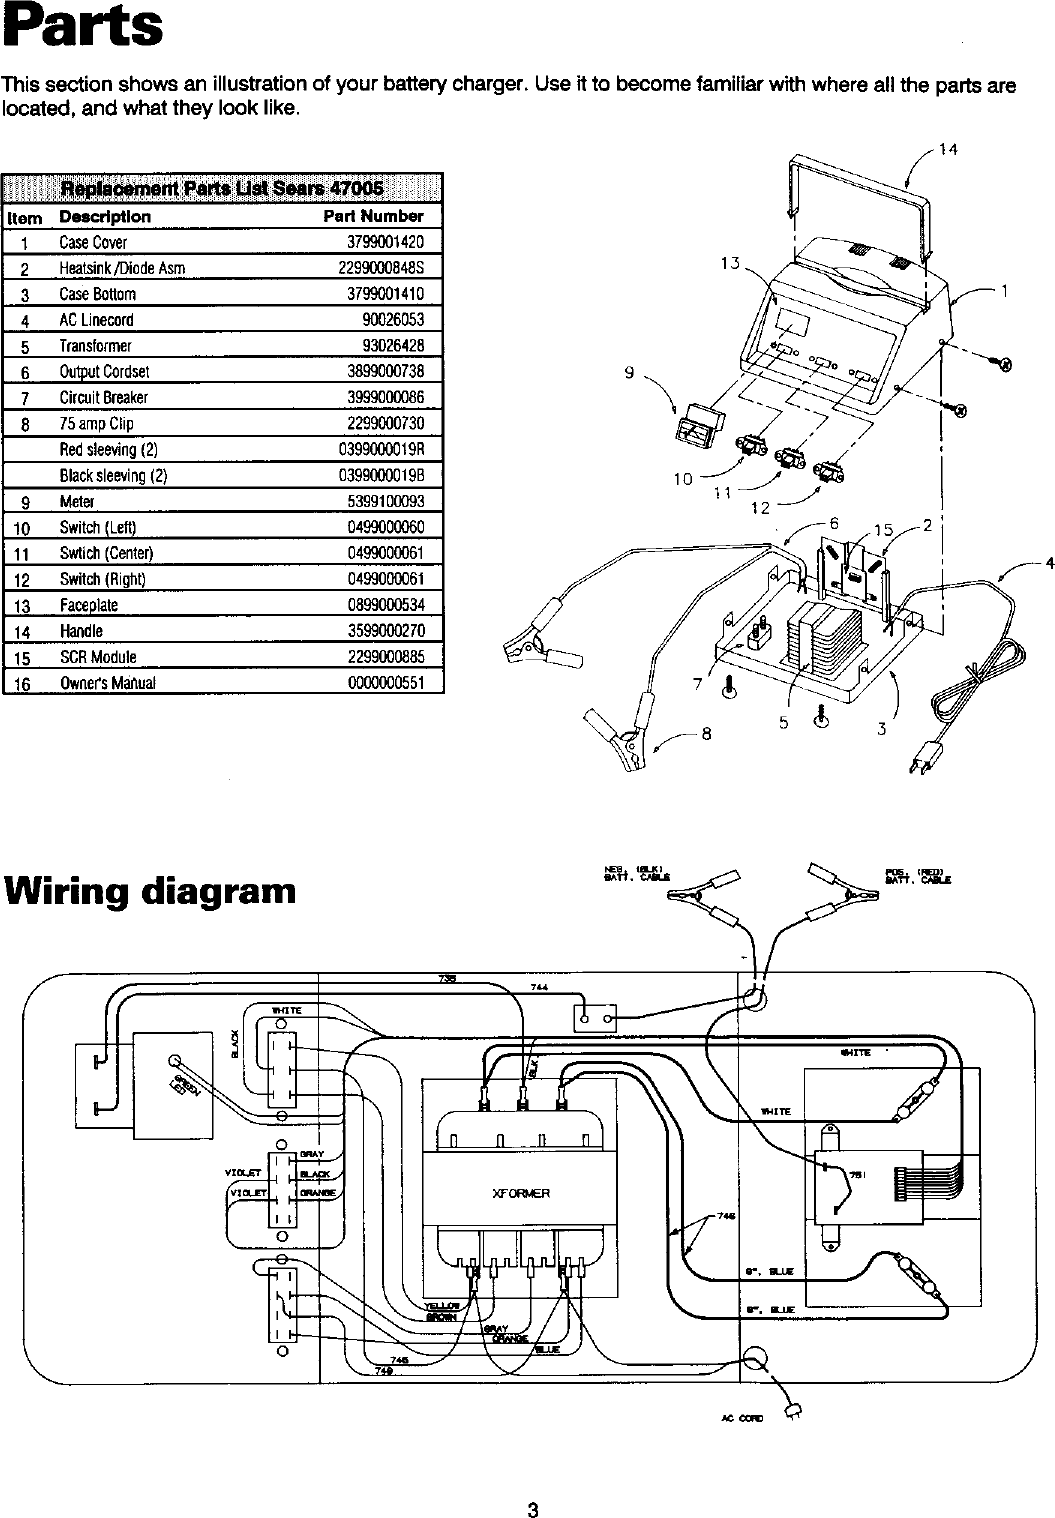 Diehard 20047005 User Manual Battery Charger Manuals And Guides L0305332 Circuit Using Scr Page 4 Of 12